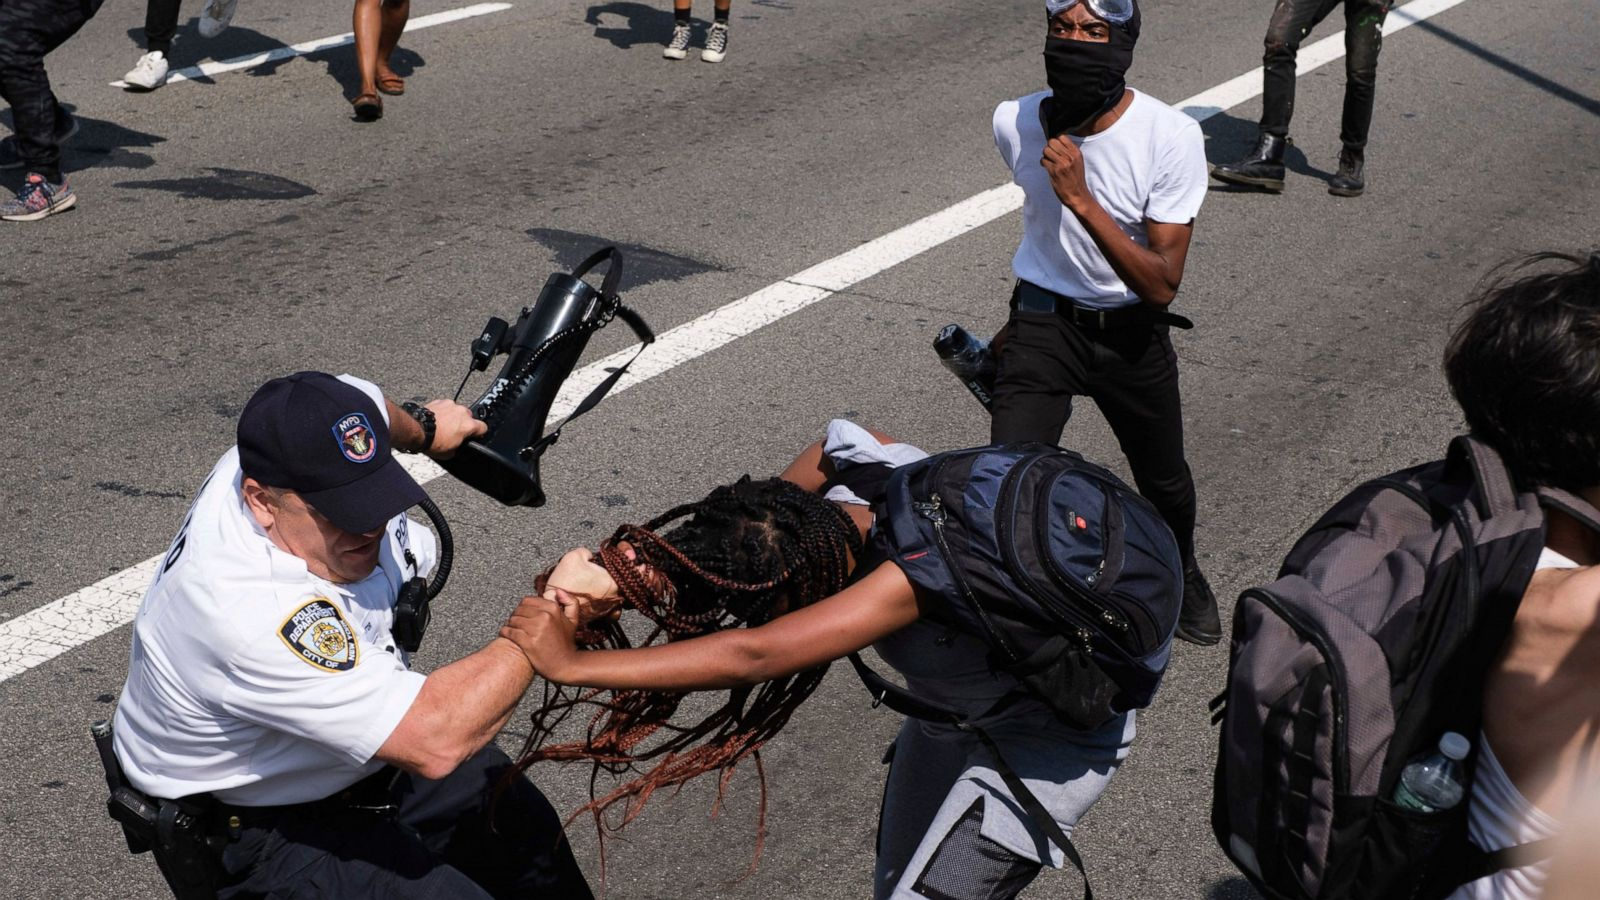 NYPD chief, cops hurt as protesters clash on Brooklyn Bridge - ABC ...